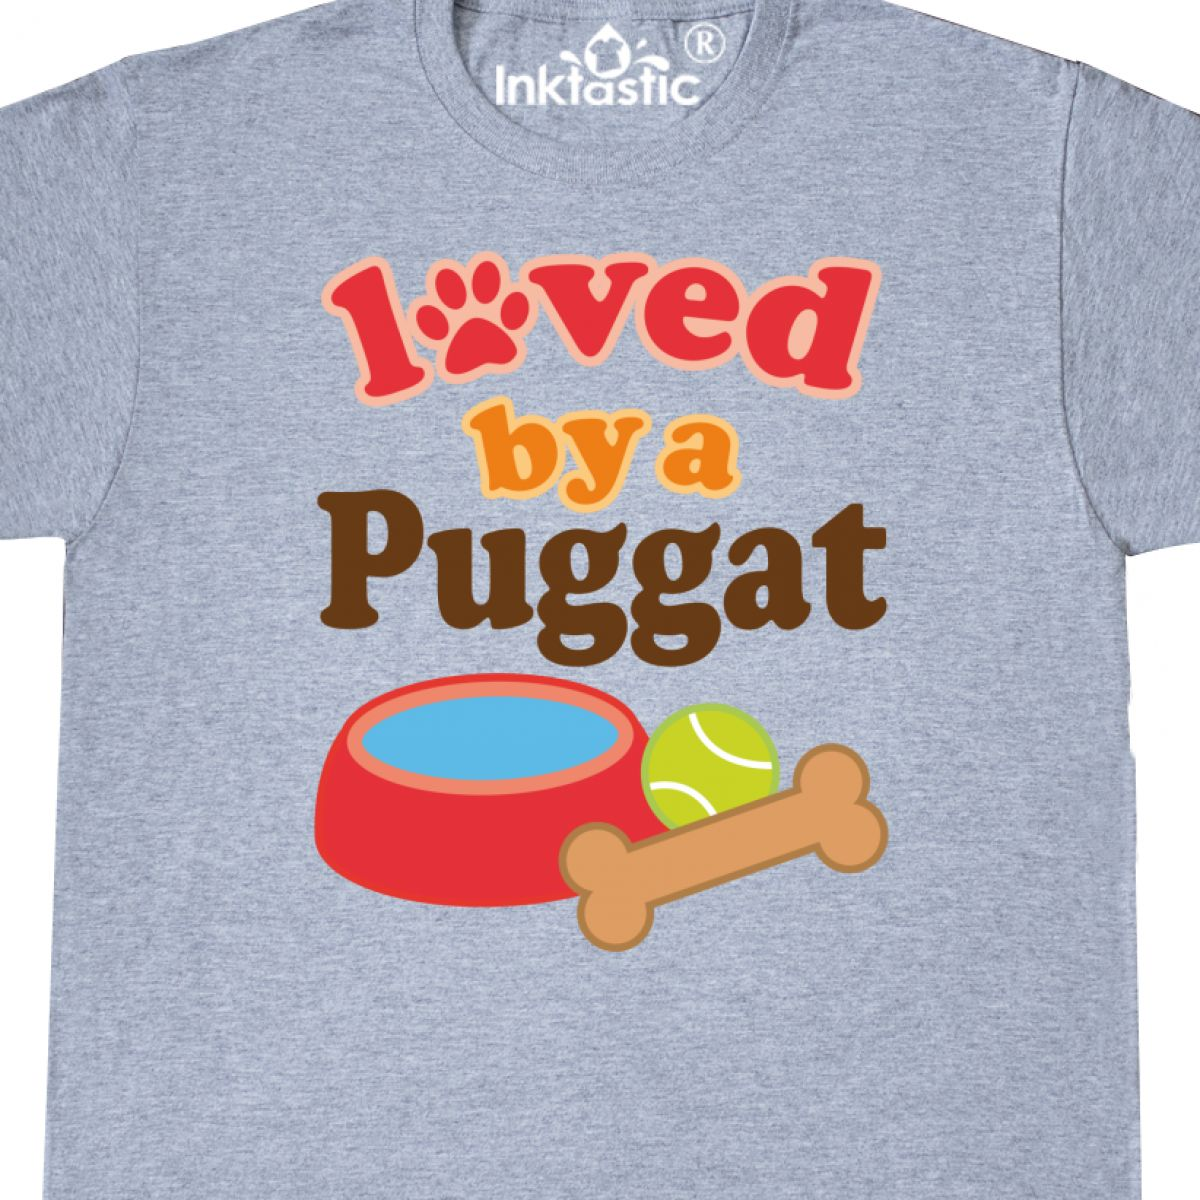 8764d3754 Inktastic Puggat Dog Lover T-Shirt Loved By Dogs Pets Owner Cute ...